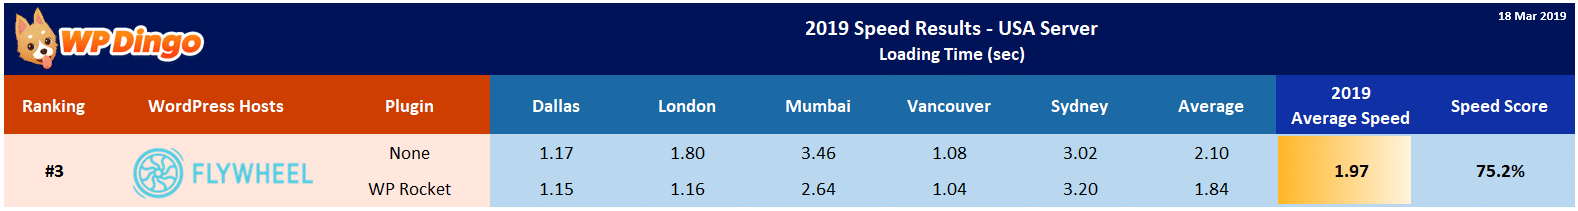 2019 Flywheel Speed Table - USA Server